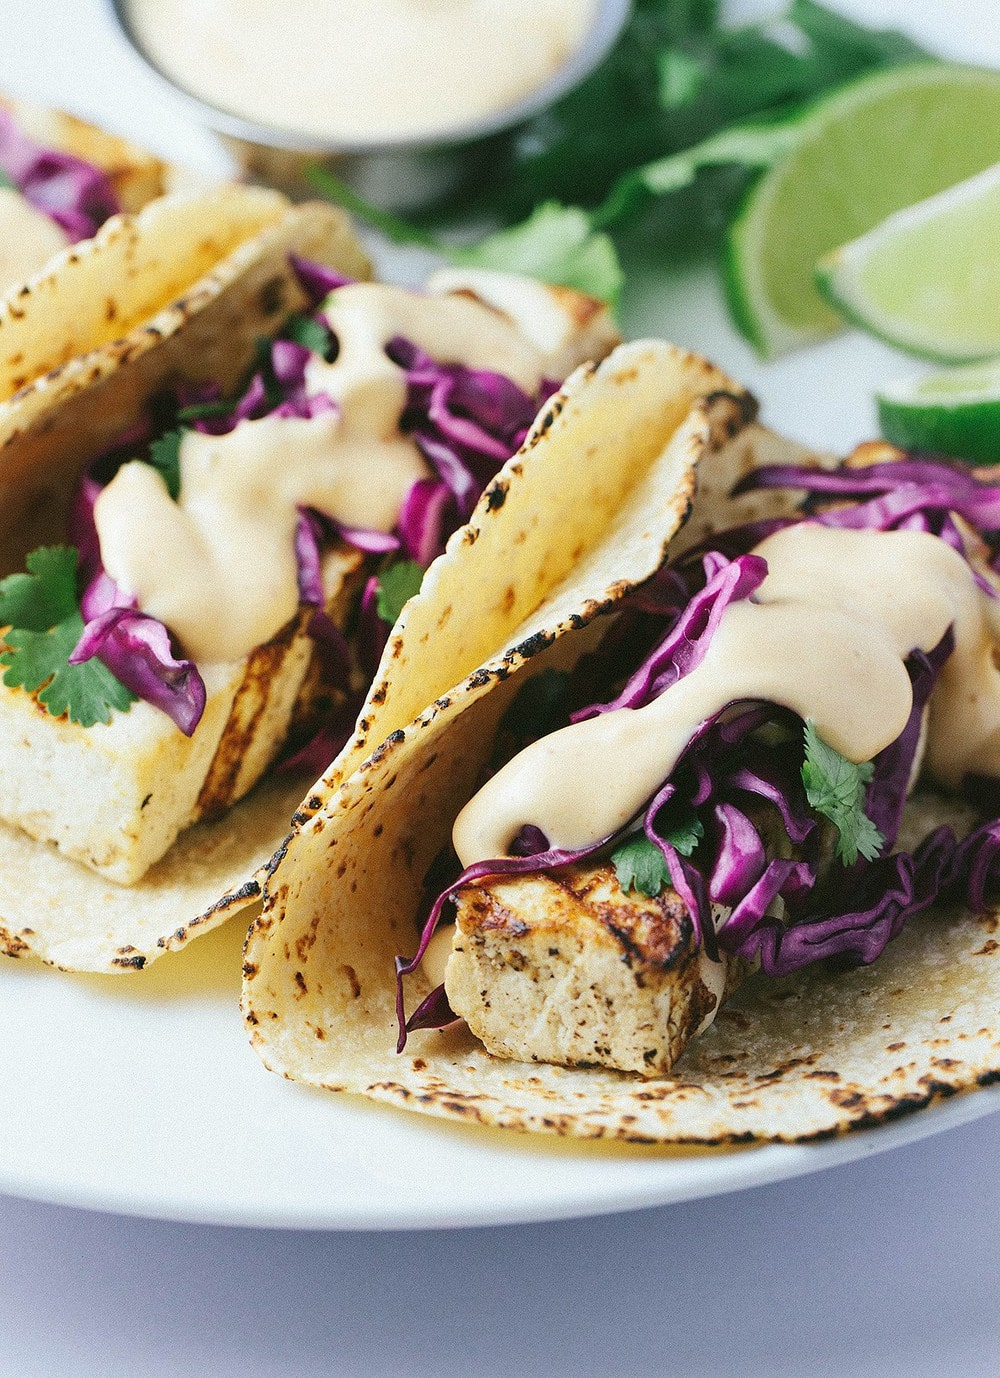 side angle view of grilled tofu taco piled high with red cabbage slaw and spicy sauce